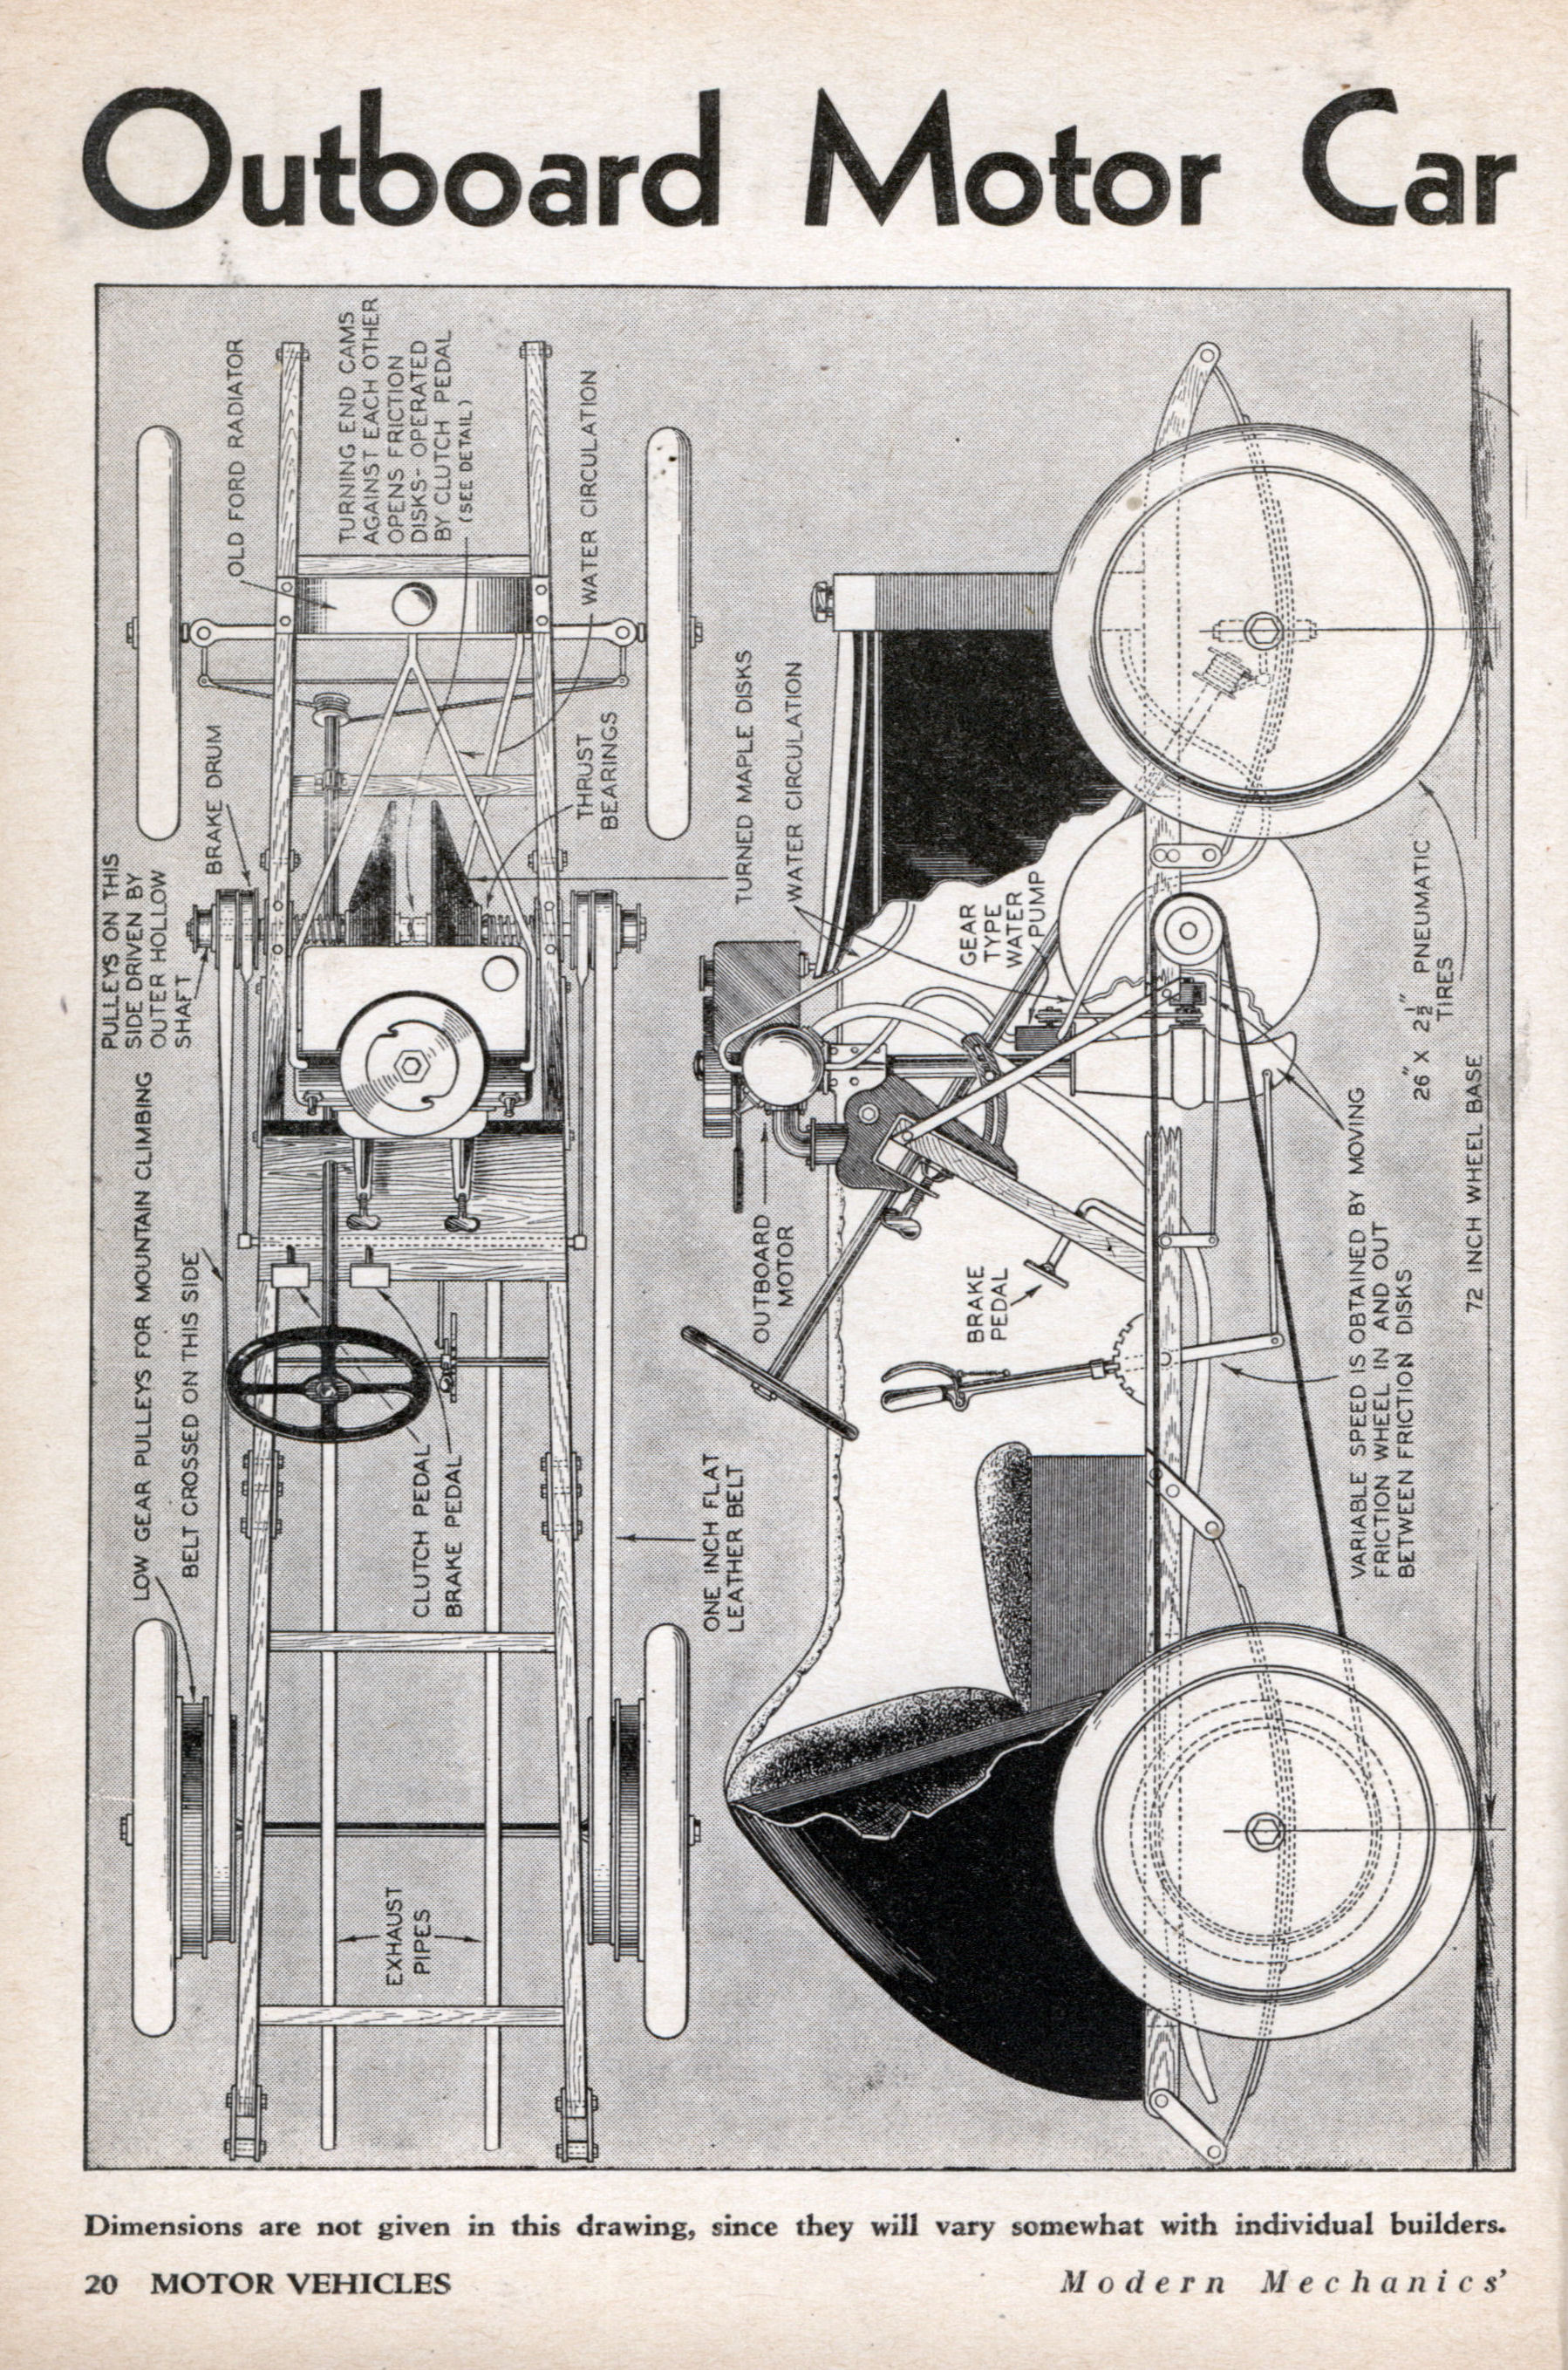 Outboard Motor Car Does 40 Miles An Hour Modern Mechanix Mercury Wiring Diagram 2006 Jan 1932